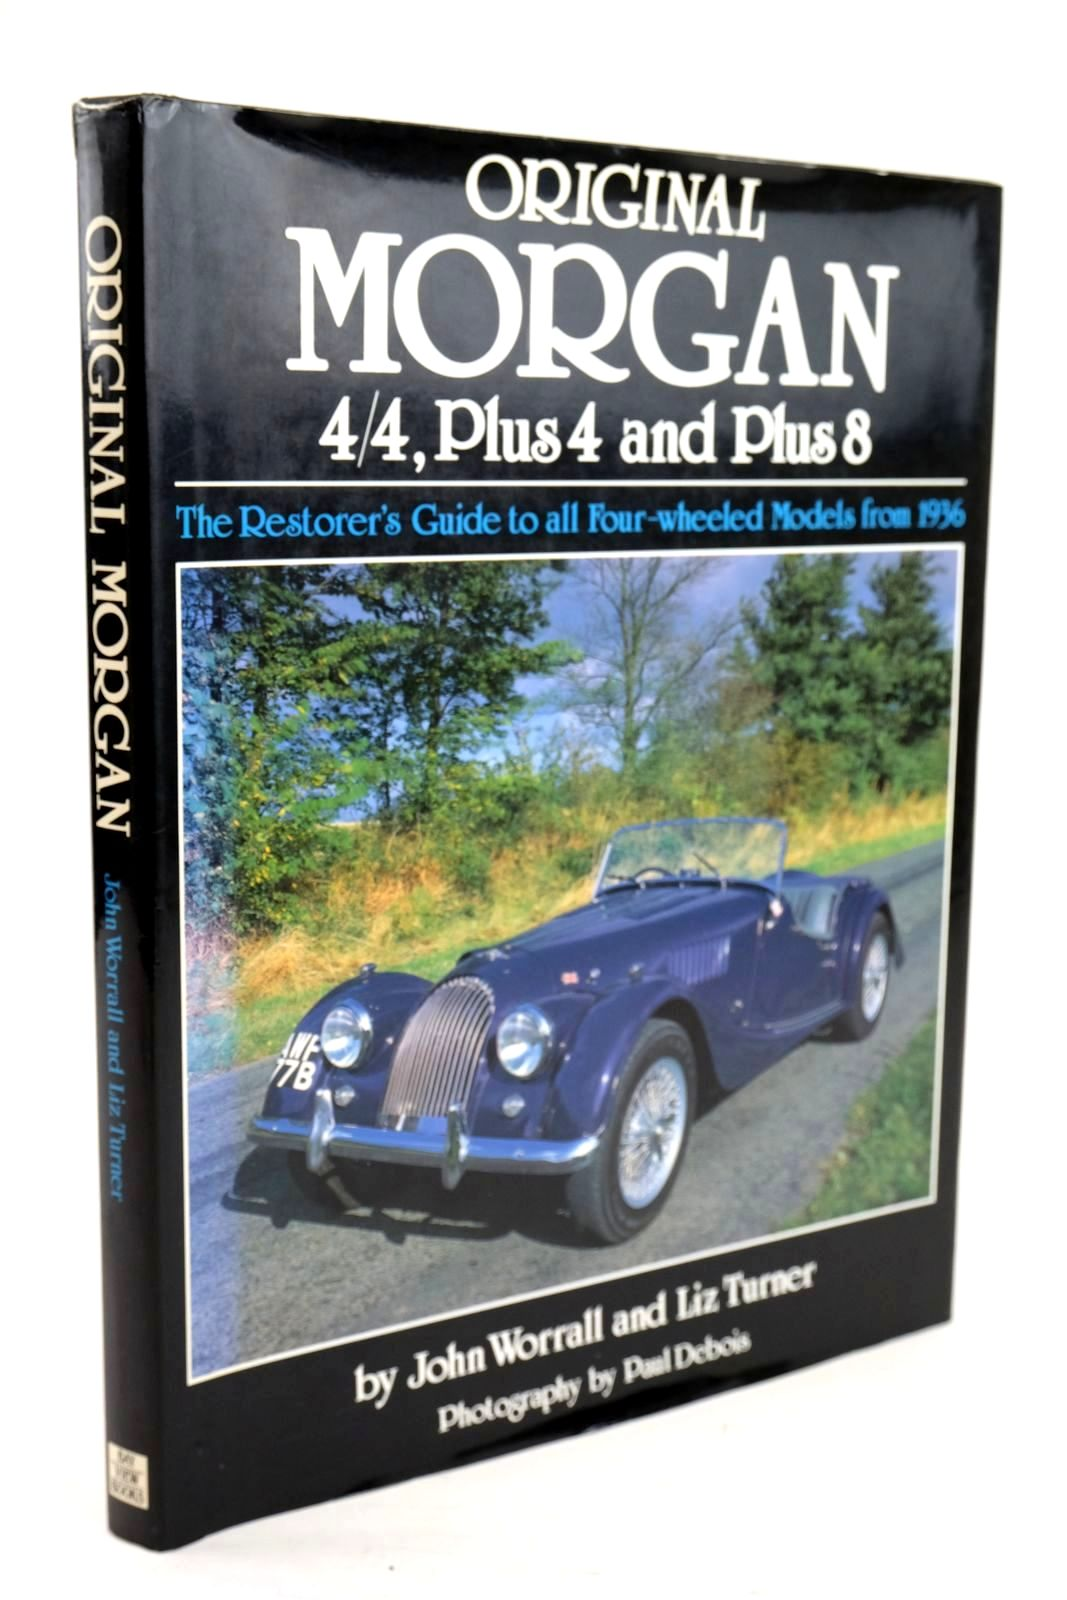 Photo of ORIGINAL MORGAN 4/4, PLUS 4 AND PLUS 8 written by Worrall, John Turner, Liz published by Bay View Books (STOCK CODE: 1820261)  for sale by Stella & Rose's Books